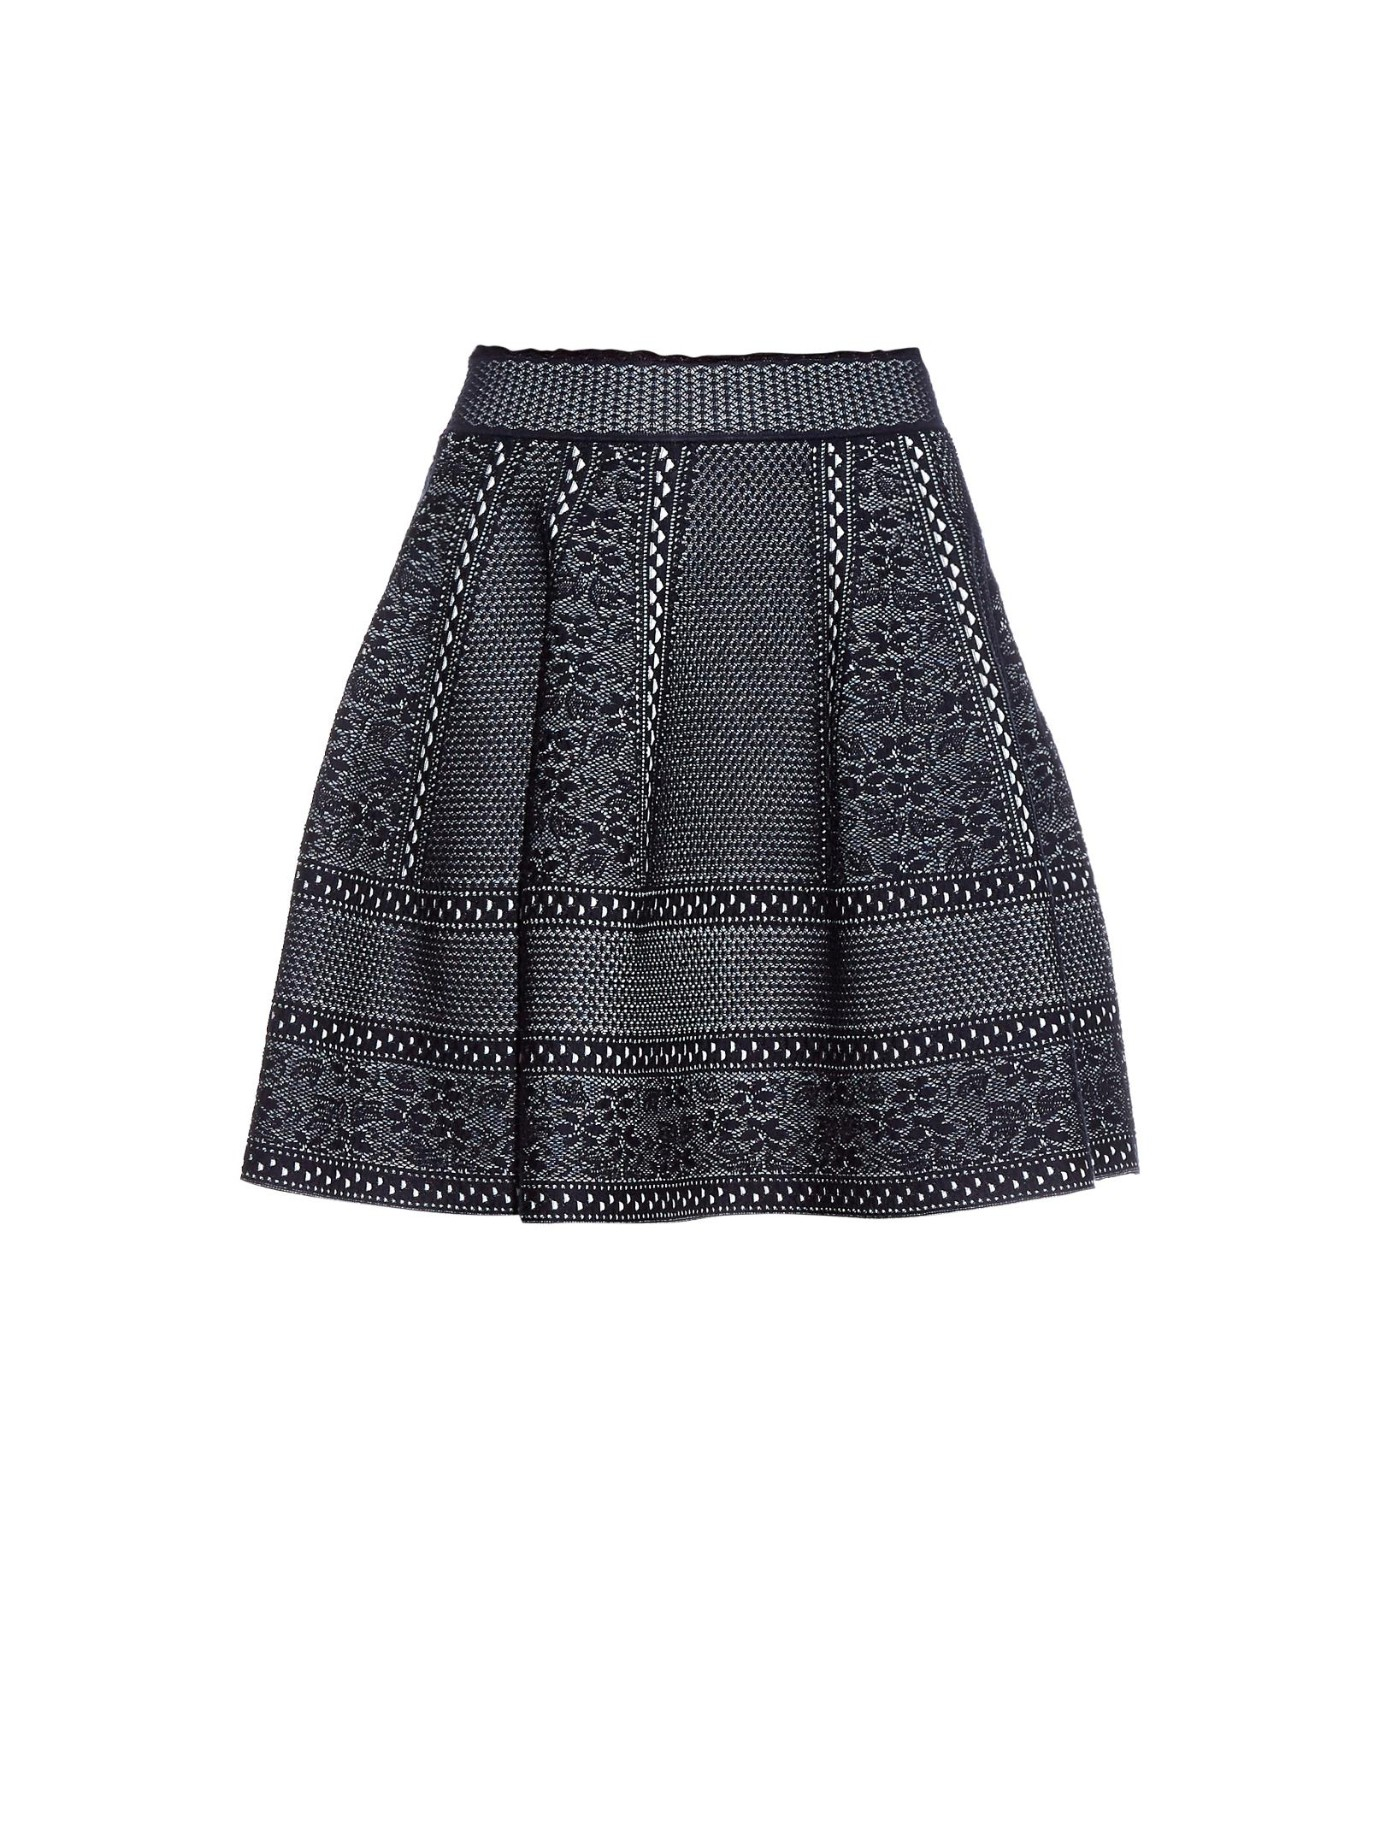 High Waisted A Line Skirt - Skirts